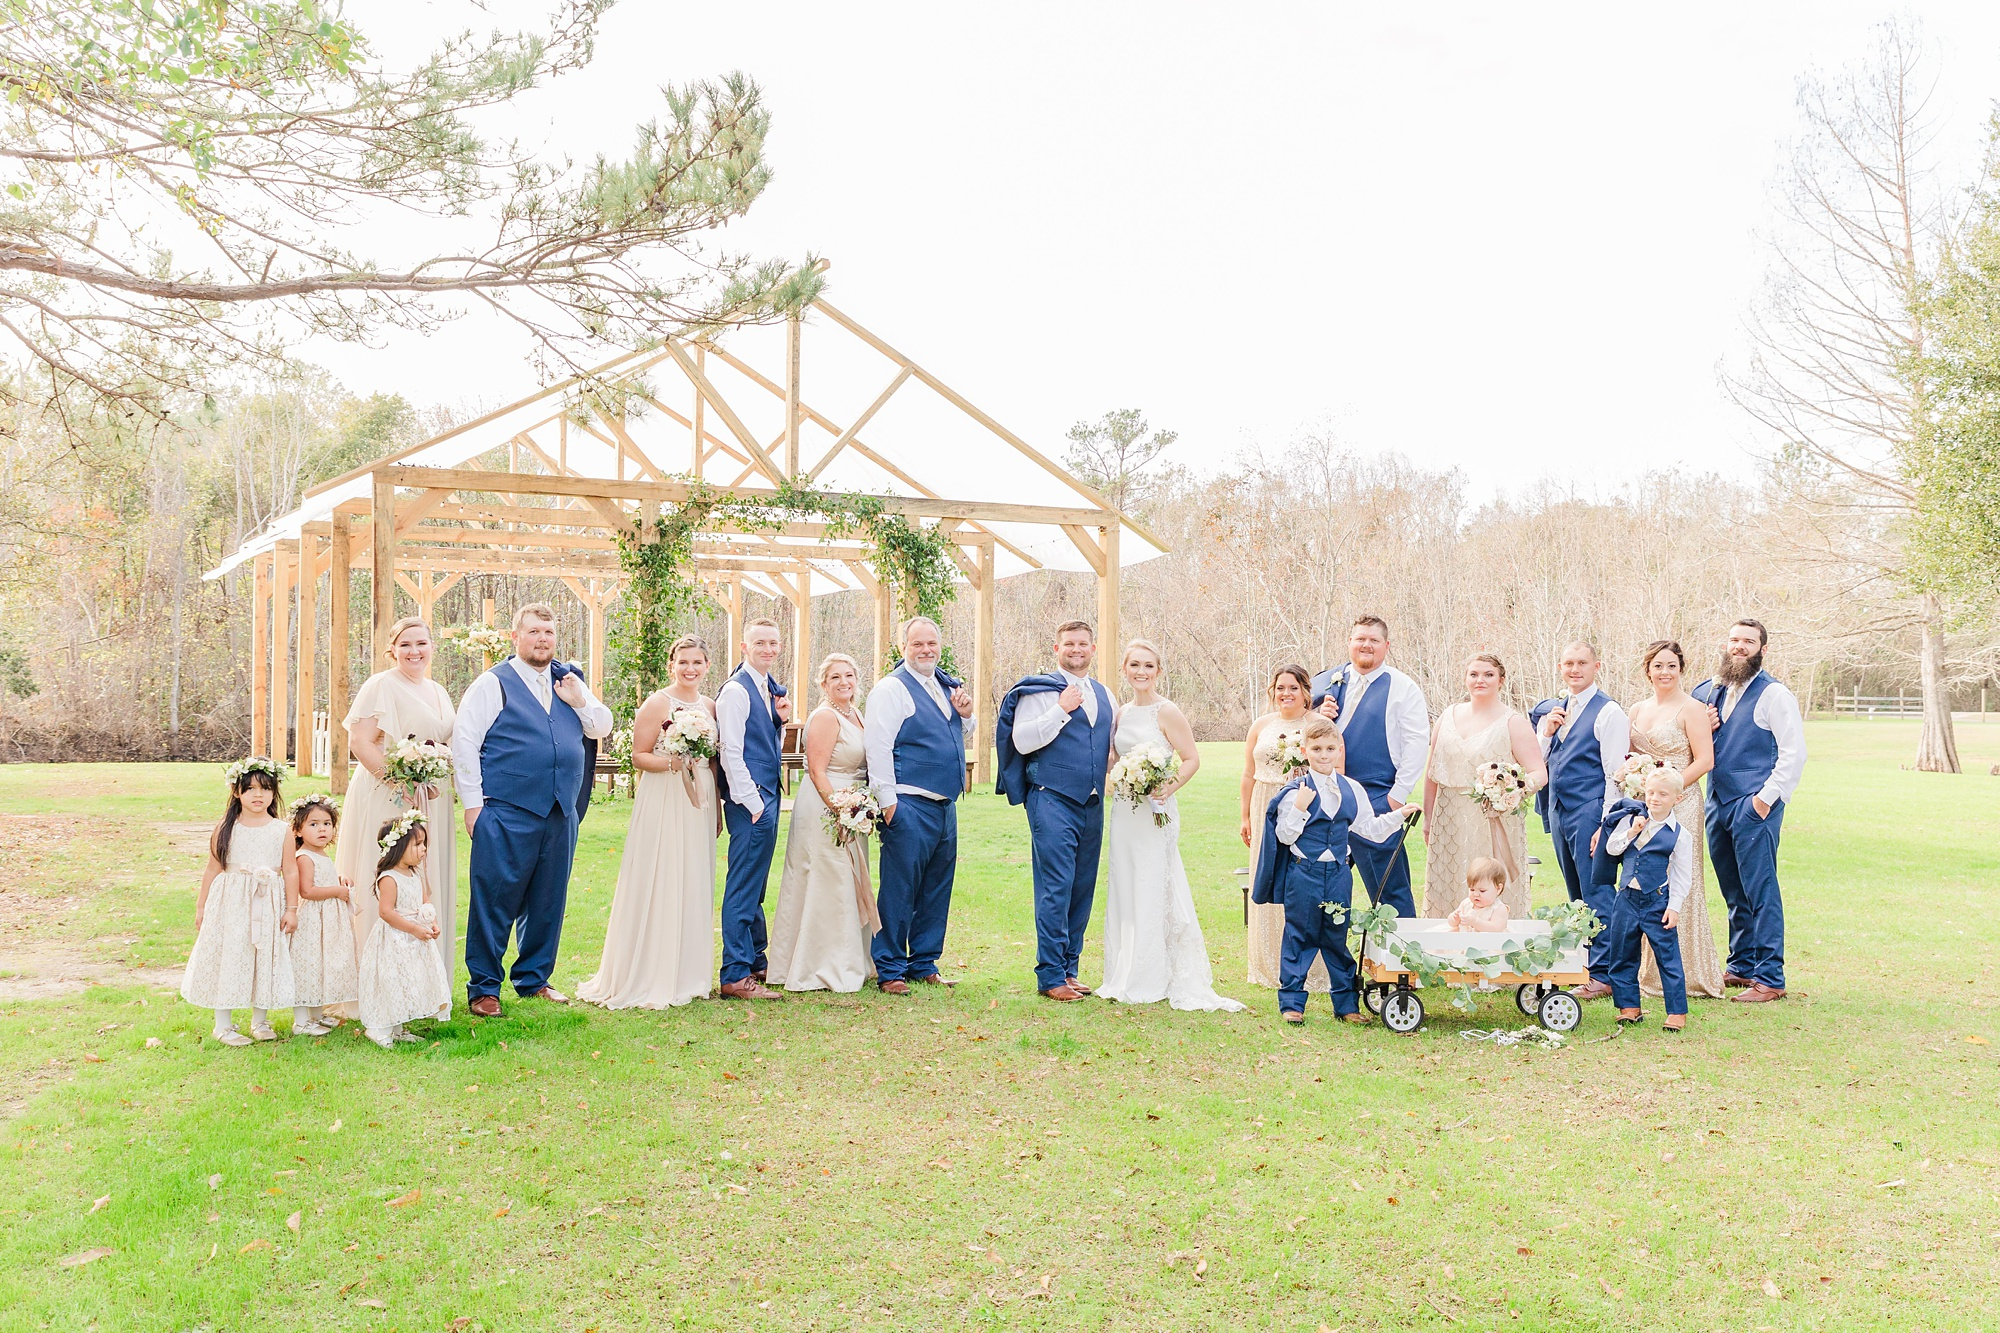 bride and groom pose with bridal party